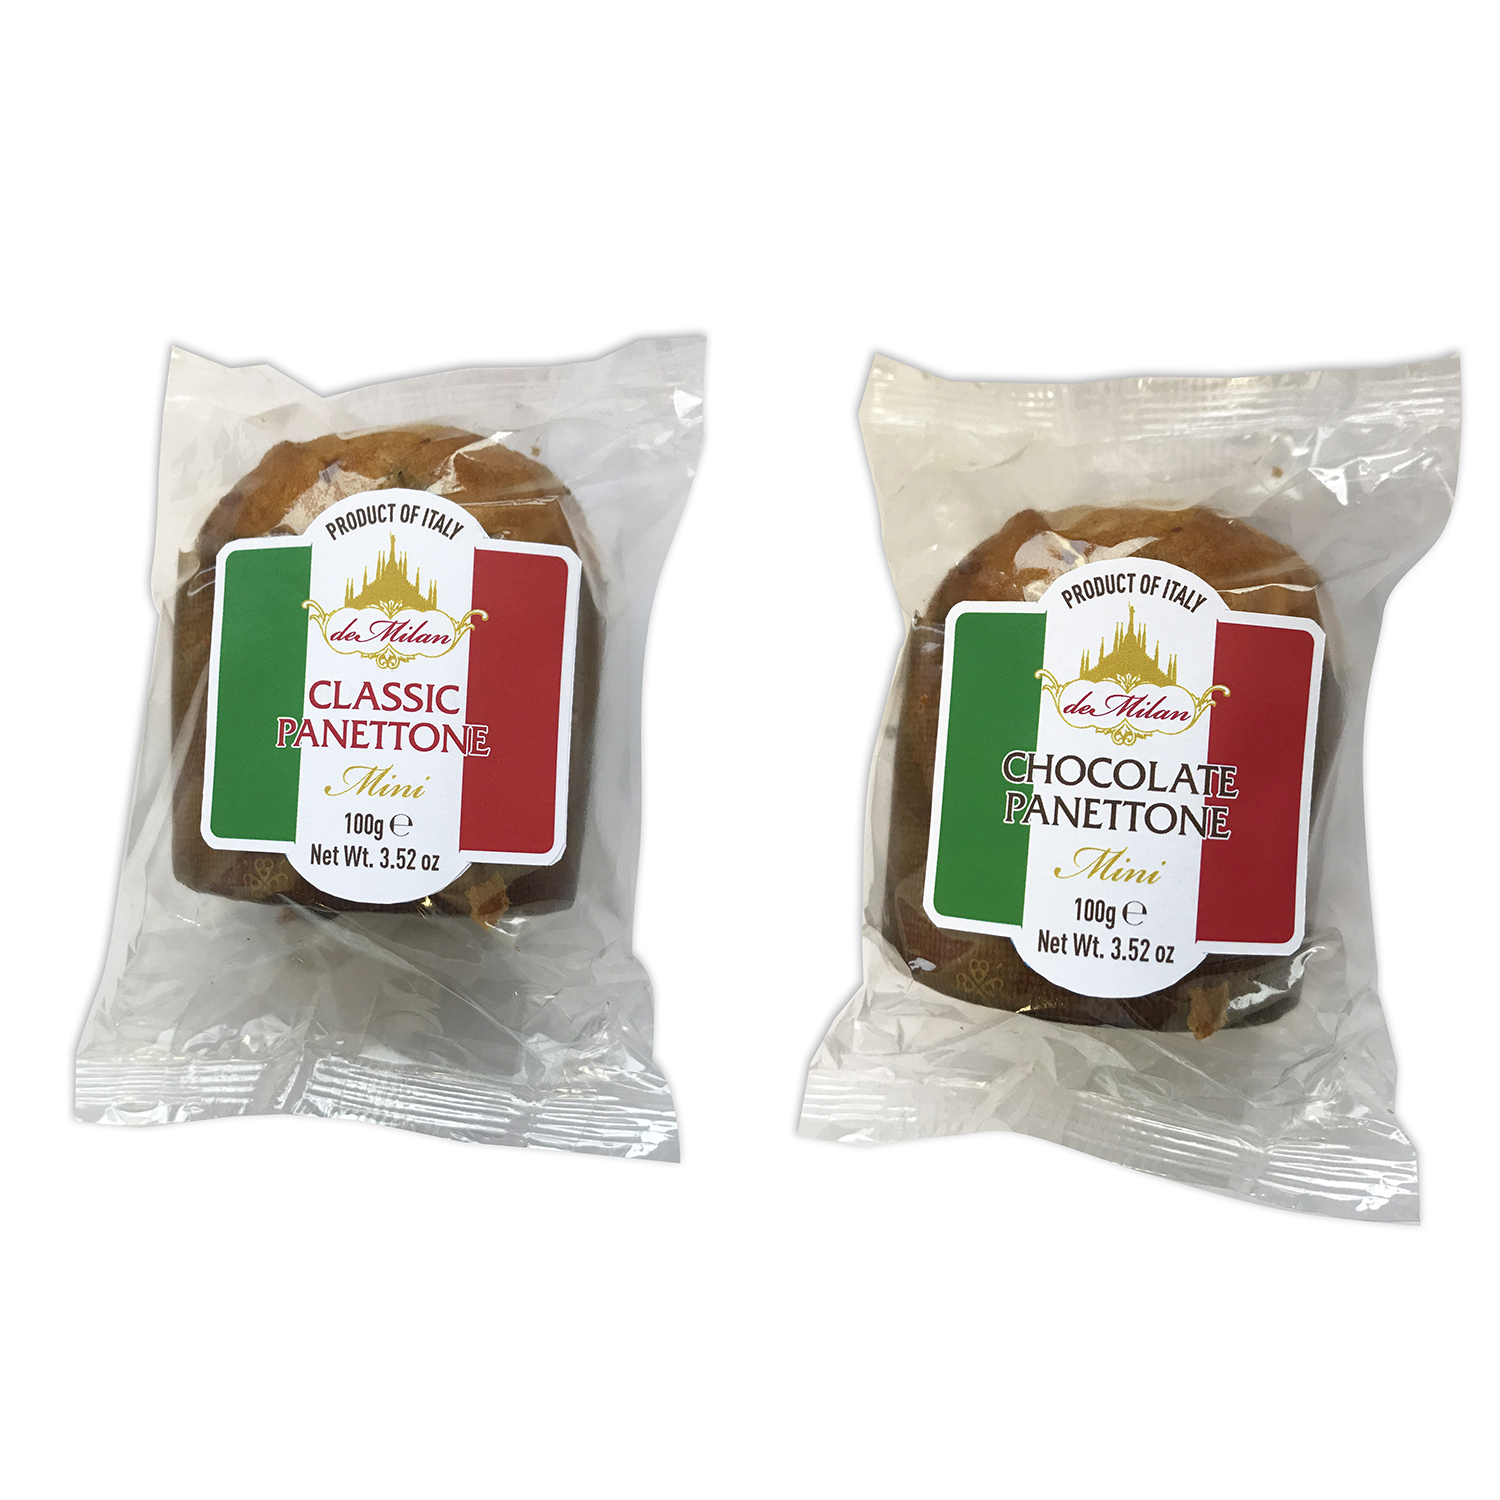 Panettone Cello biscuits tasty snack/ dessert/Confectionary/ Baked cake Bakery, Italy, Brand-Chef,Paolo Lazzaroni&Figli Spa